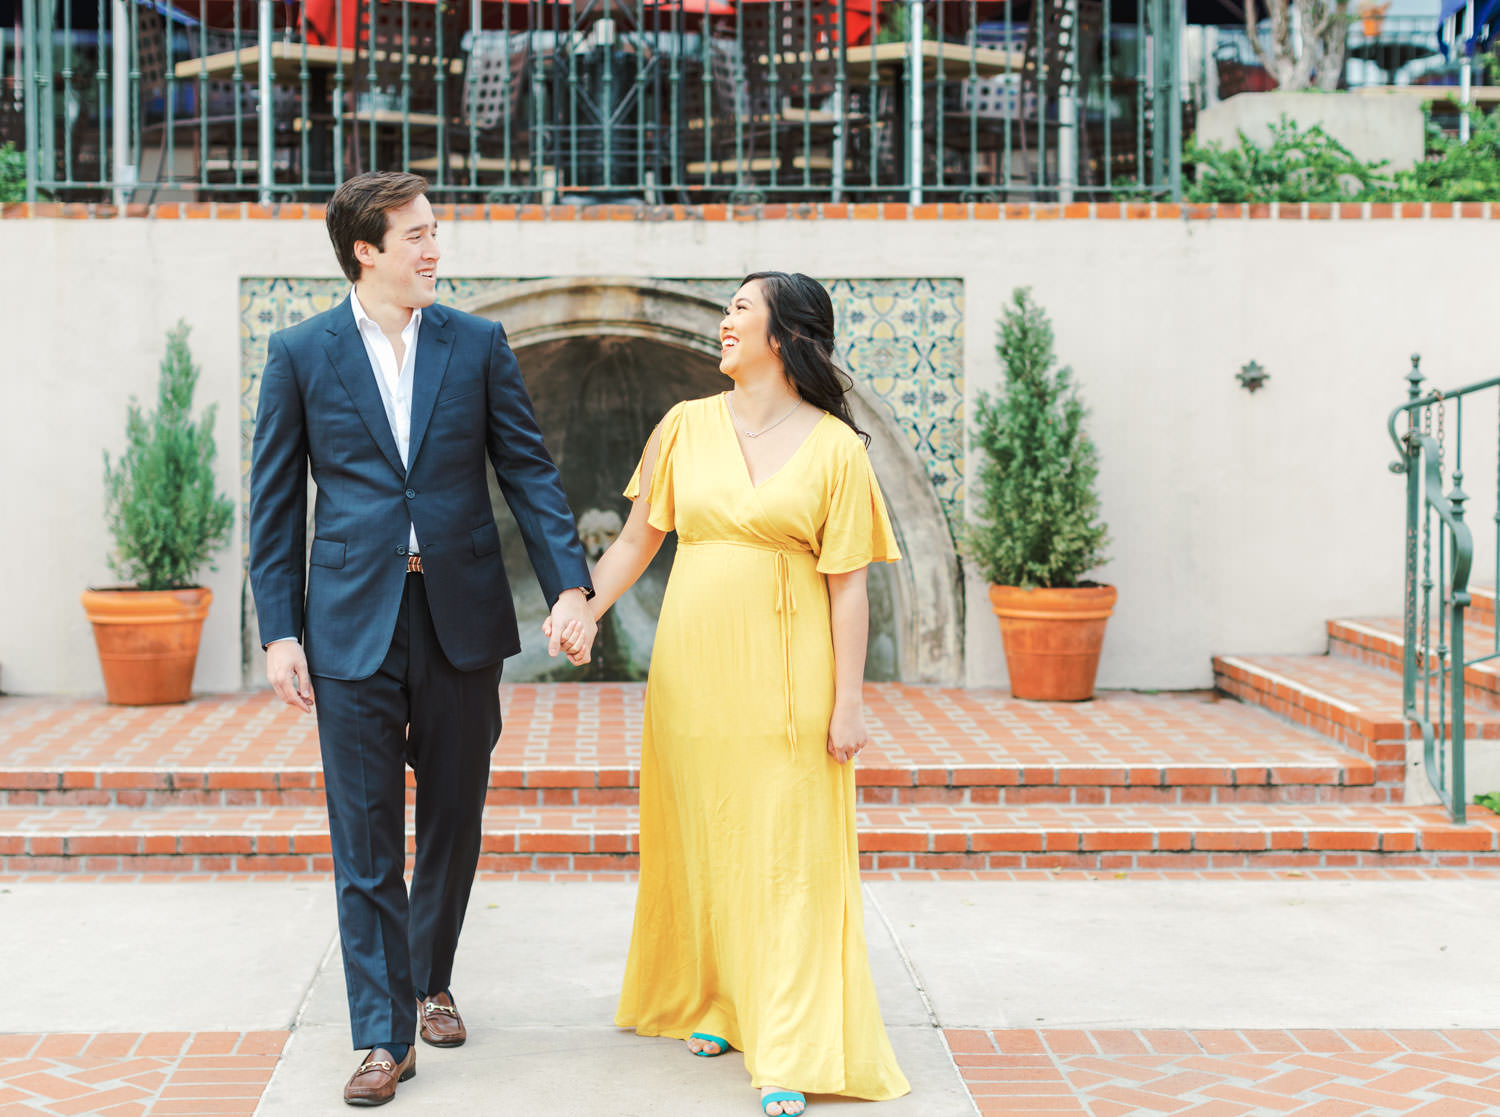 Bride in yellow flowy dress and groom in navy suit, The Prado engagement wishing well photos by Cavin Elizabeth Photography